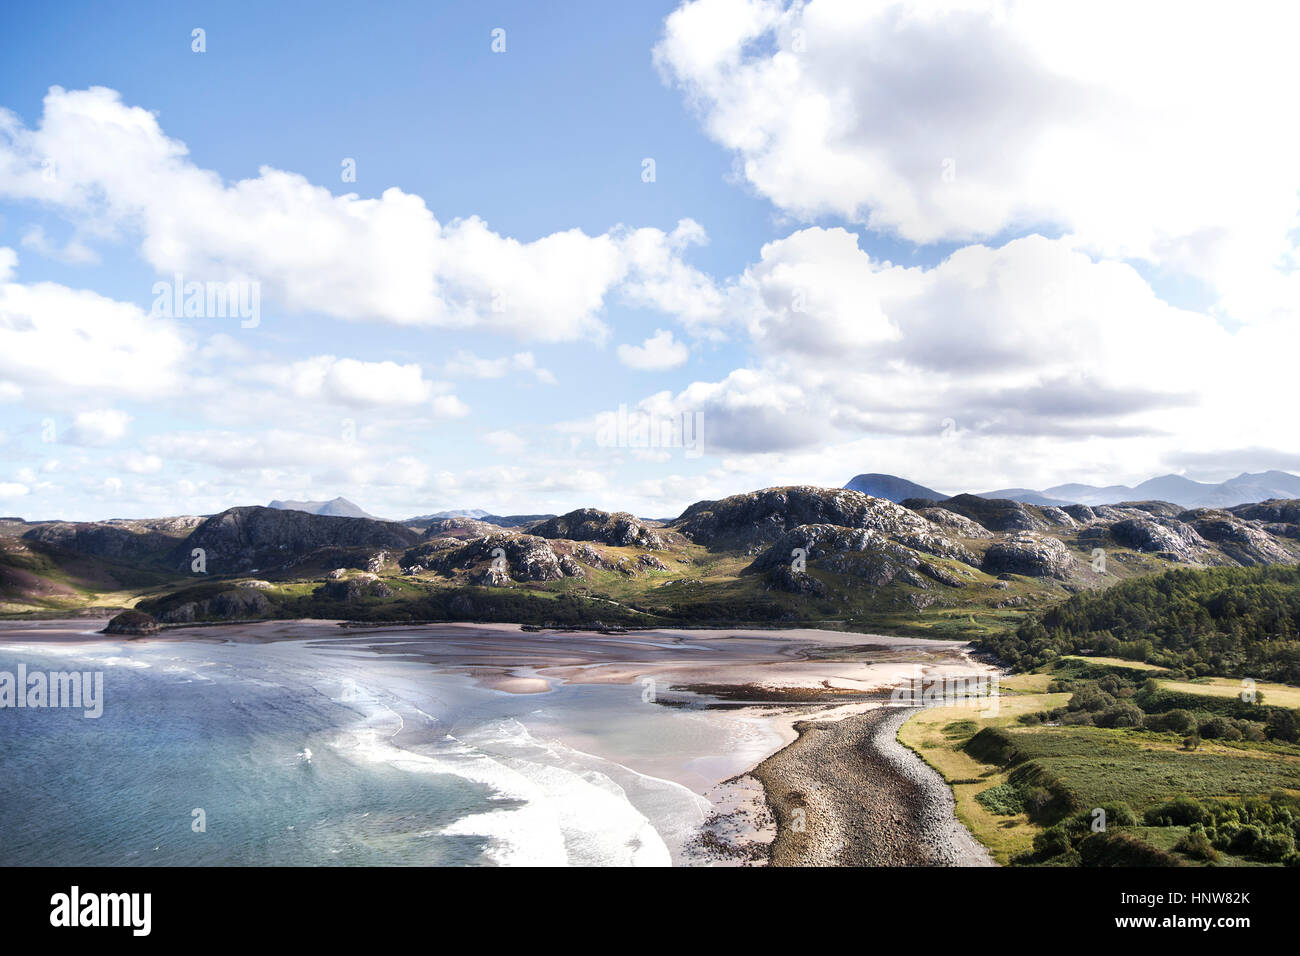 Elevated landscape view with sea and beach, Scotland, UK - Stock Image